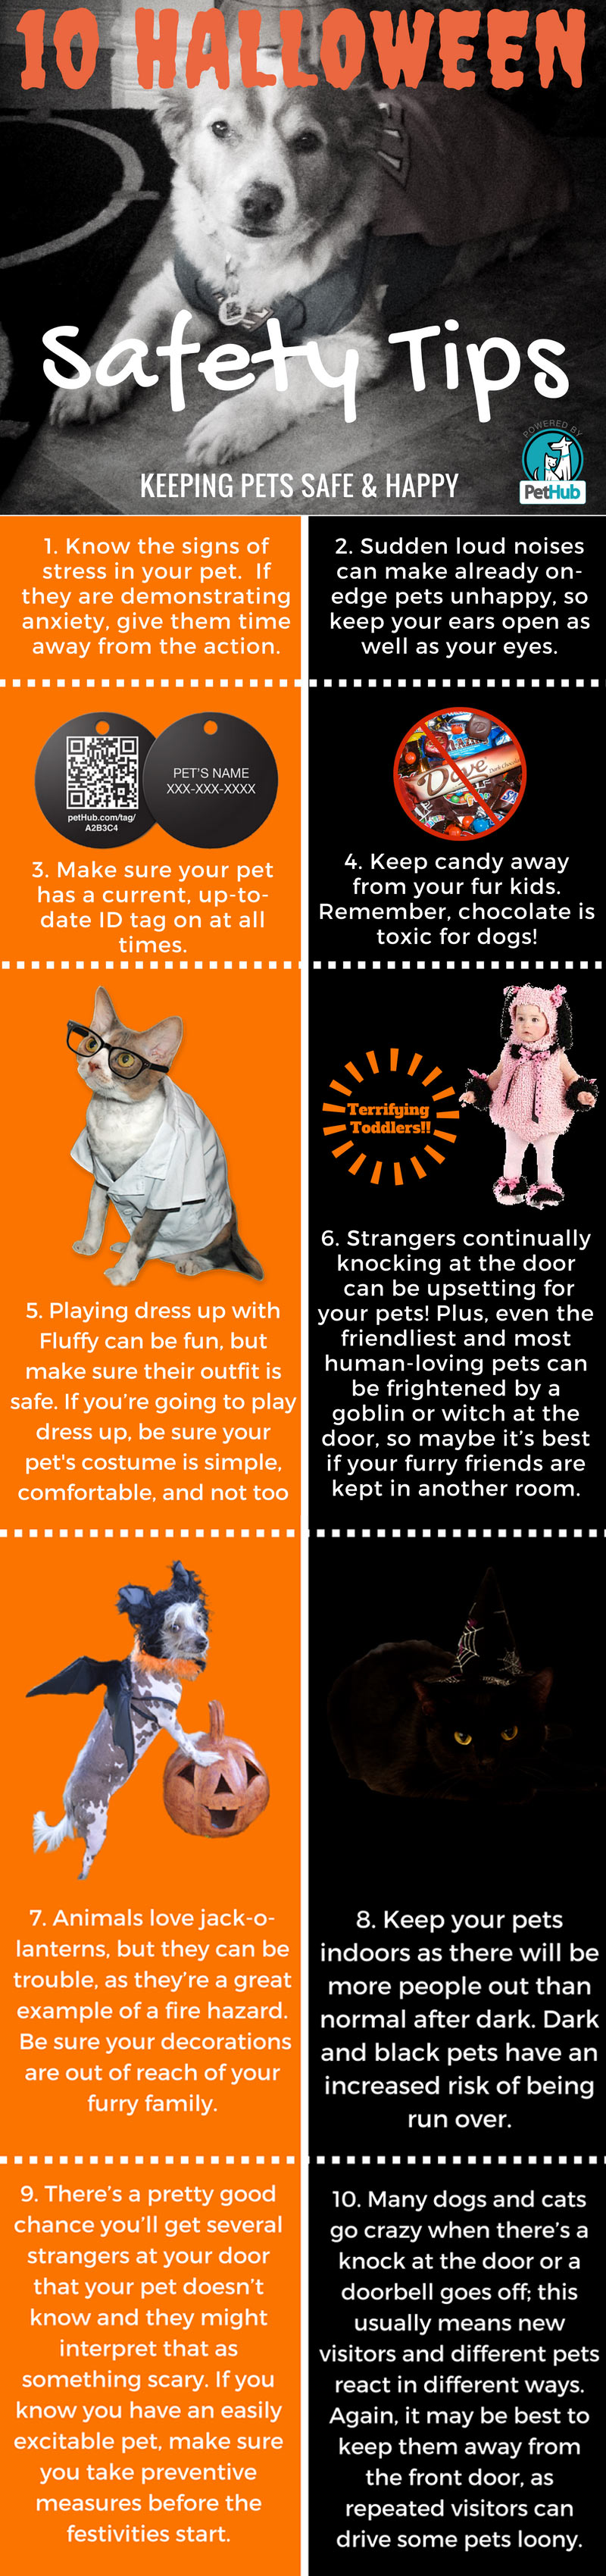 10 Halloween Safety Tips Infographic